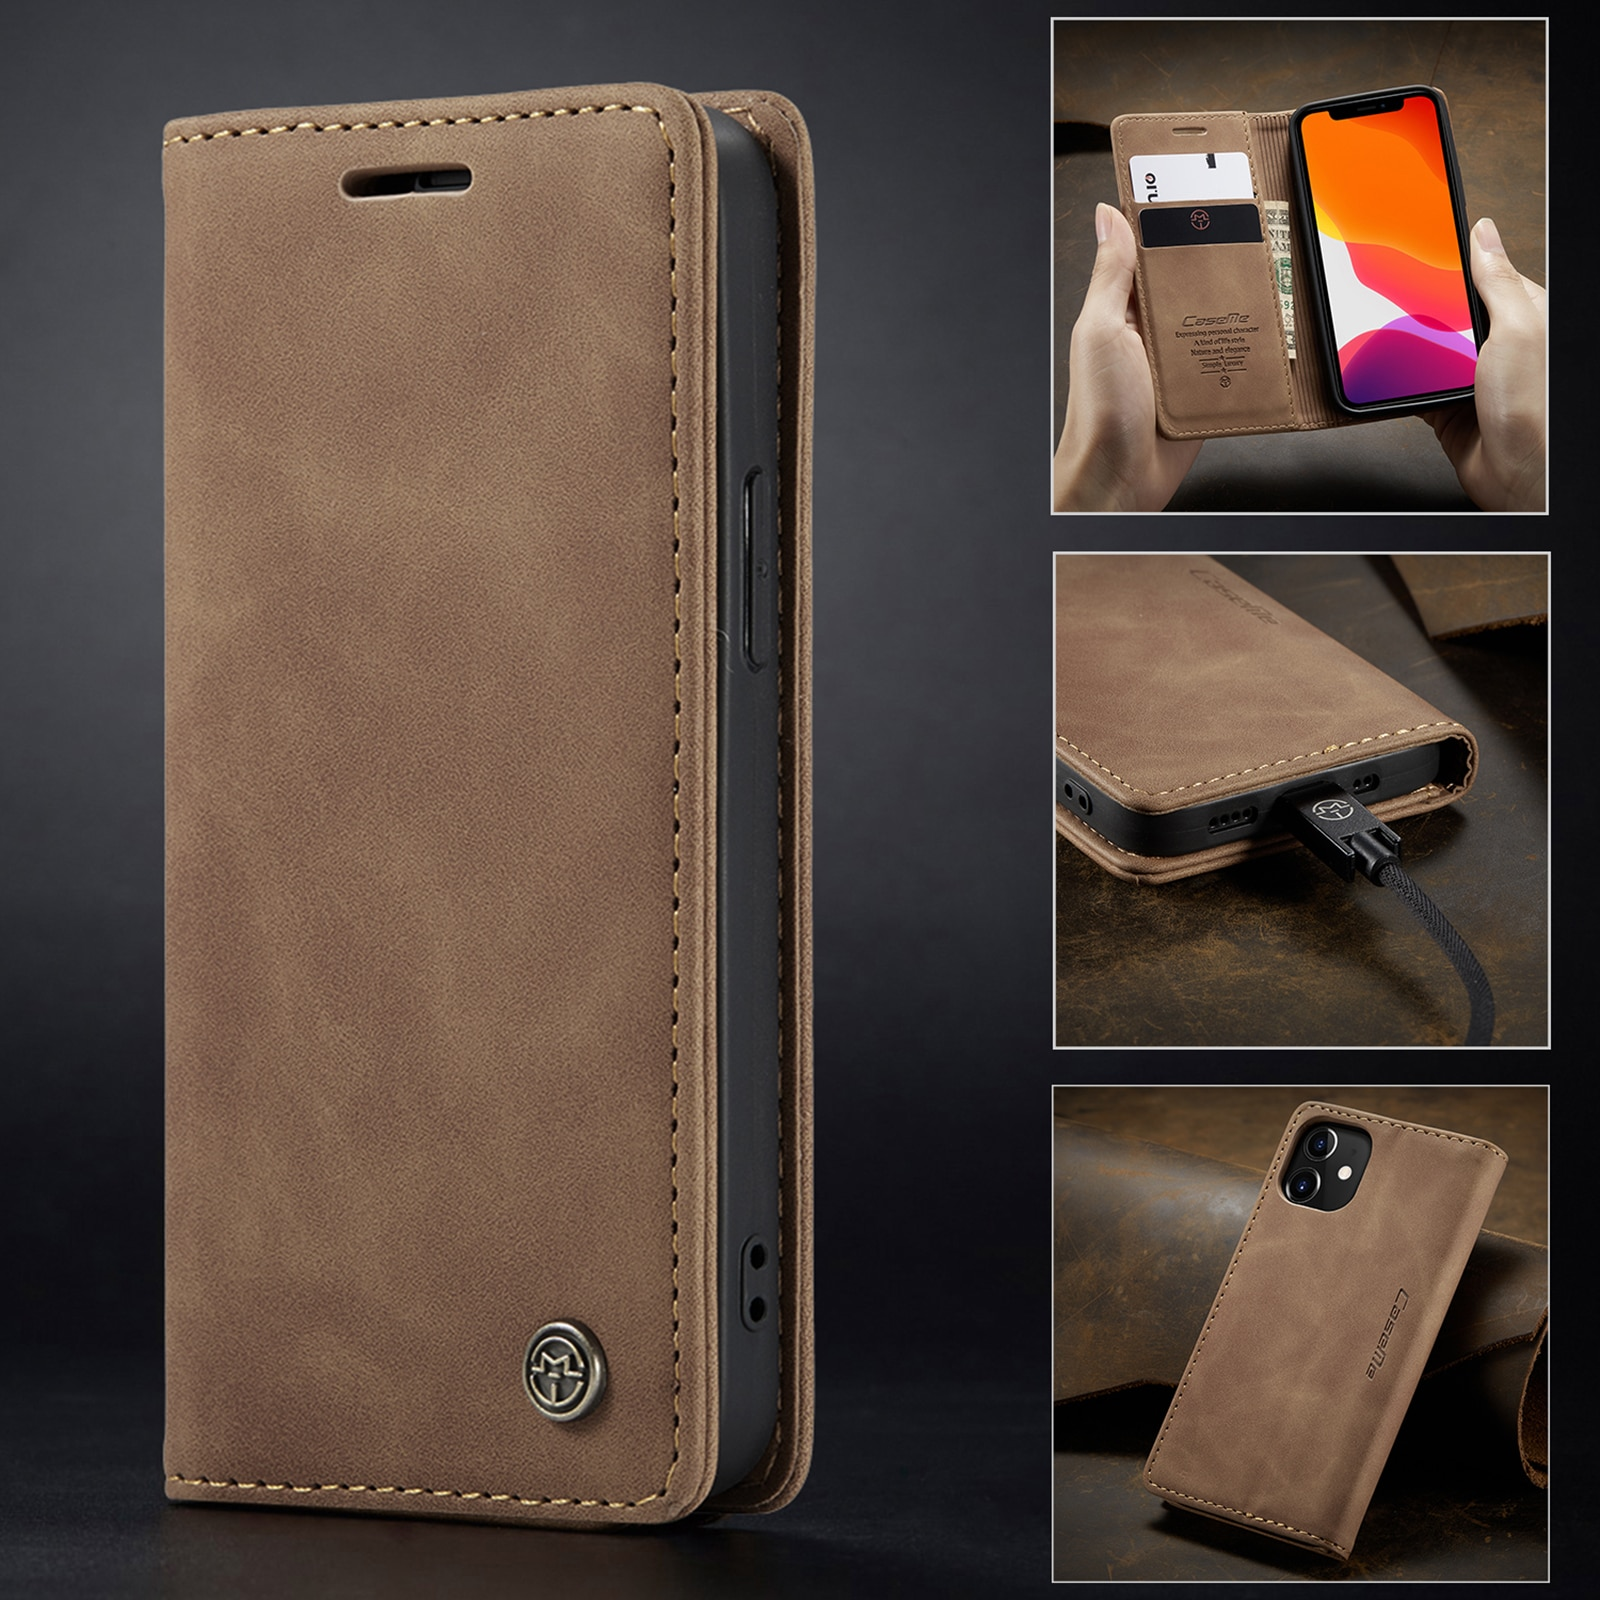 Hd8bc56533a6a4a39aef04d41a73327fb6 - Magnetic Leather Flip Case For iPhone 12 / Pro / Pro Max PU Leather Fitted Bumper Soft Retro Flip Case Book Wallet Cover